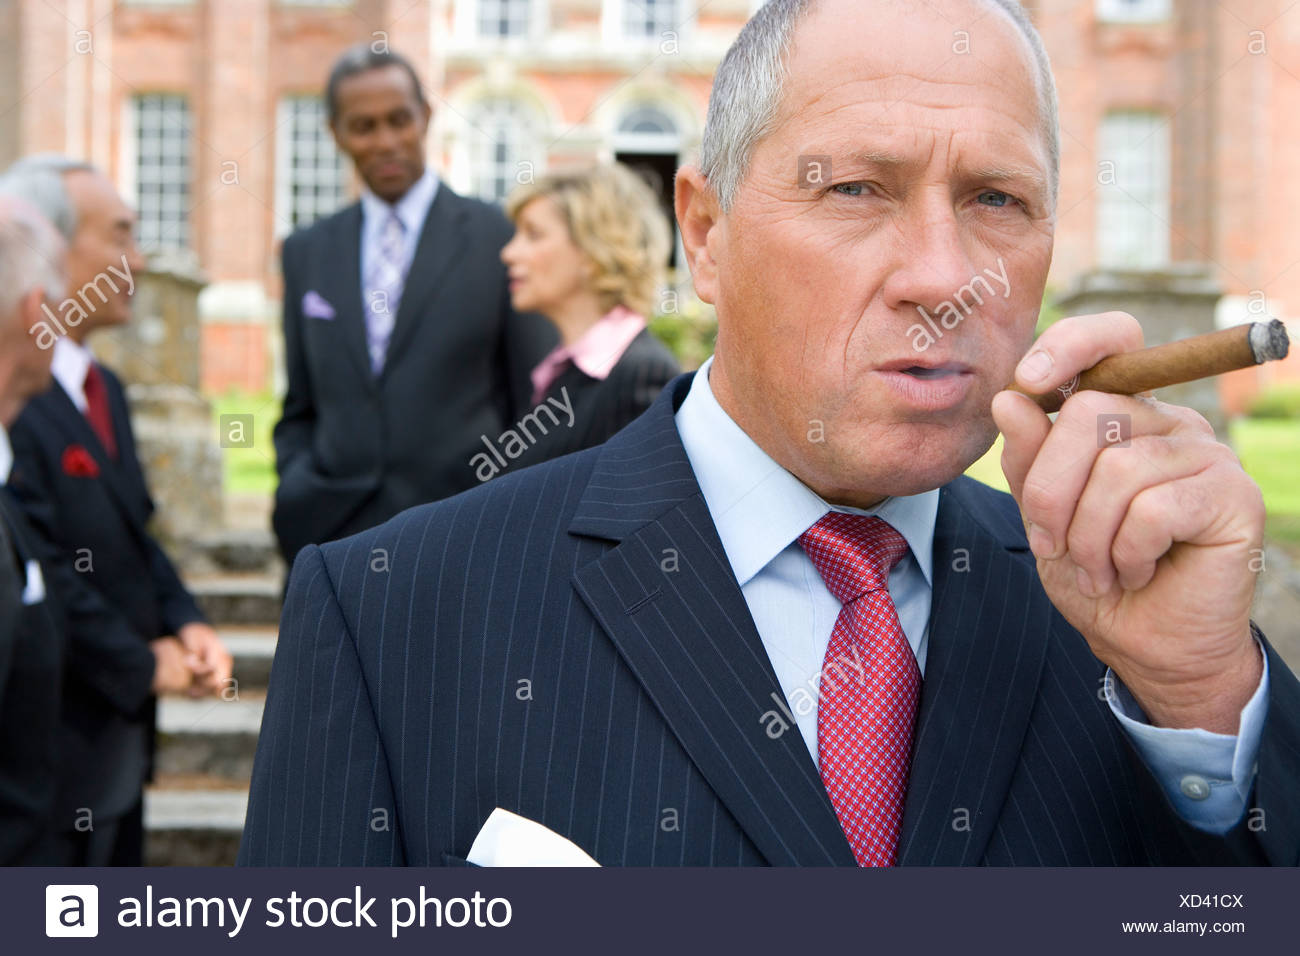 Businessman with cigar by manor house, colleagues in background, portrait Stock Photo